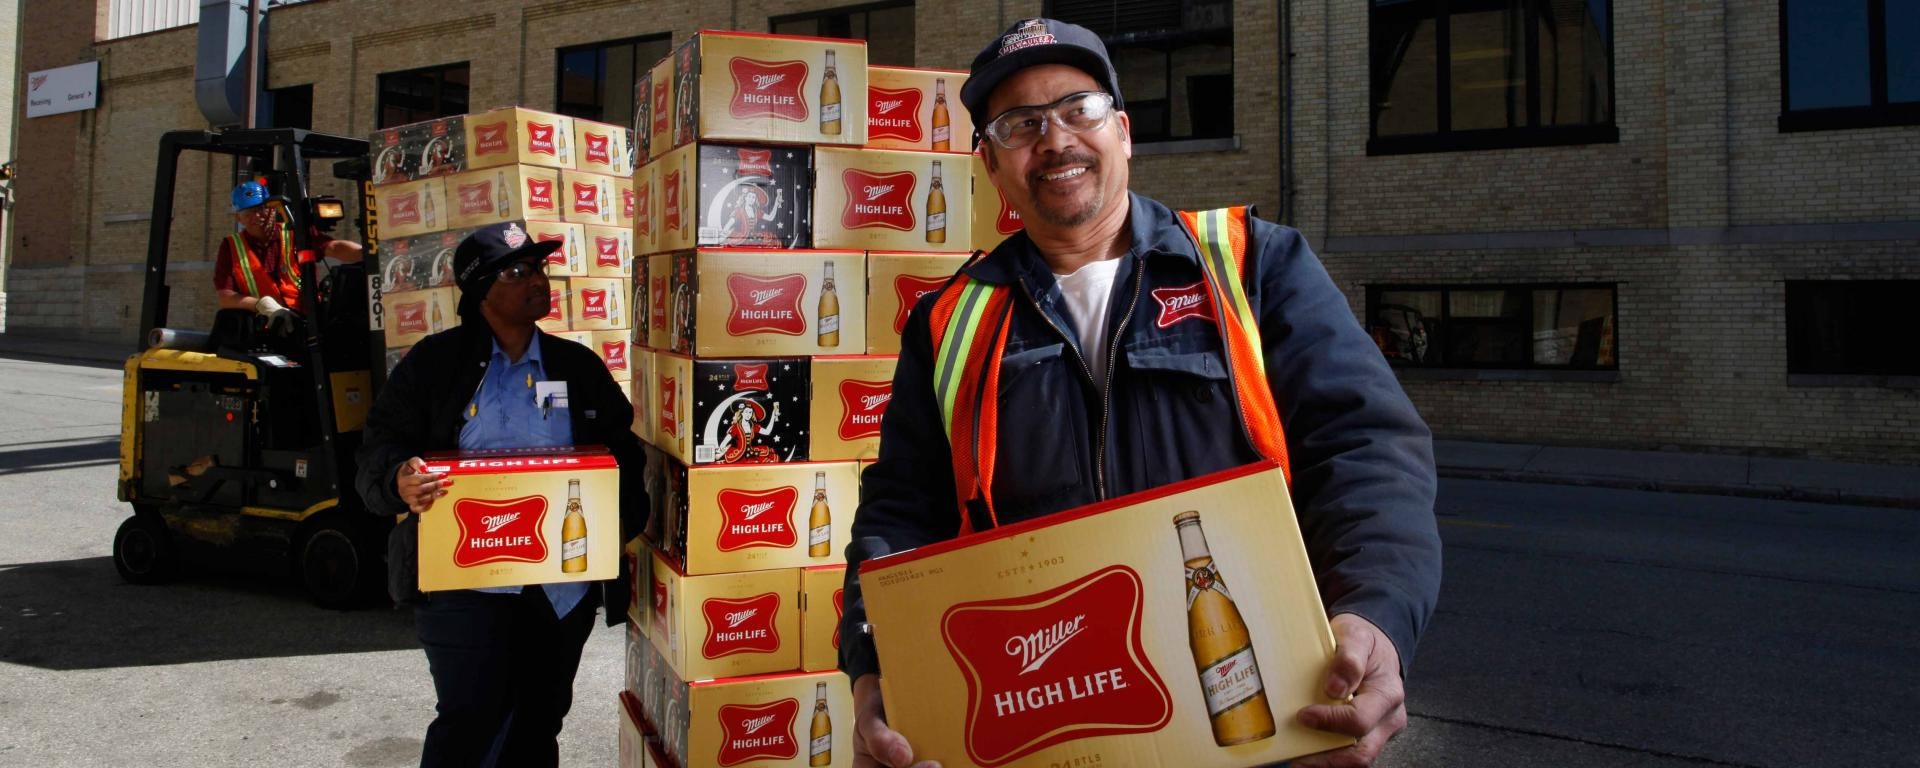 Employees holding Miller High life boxes